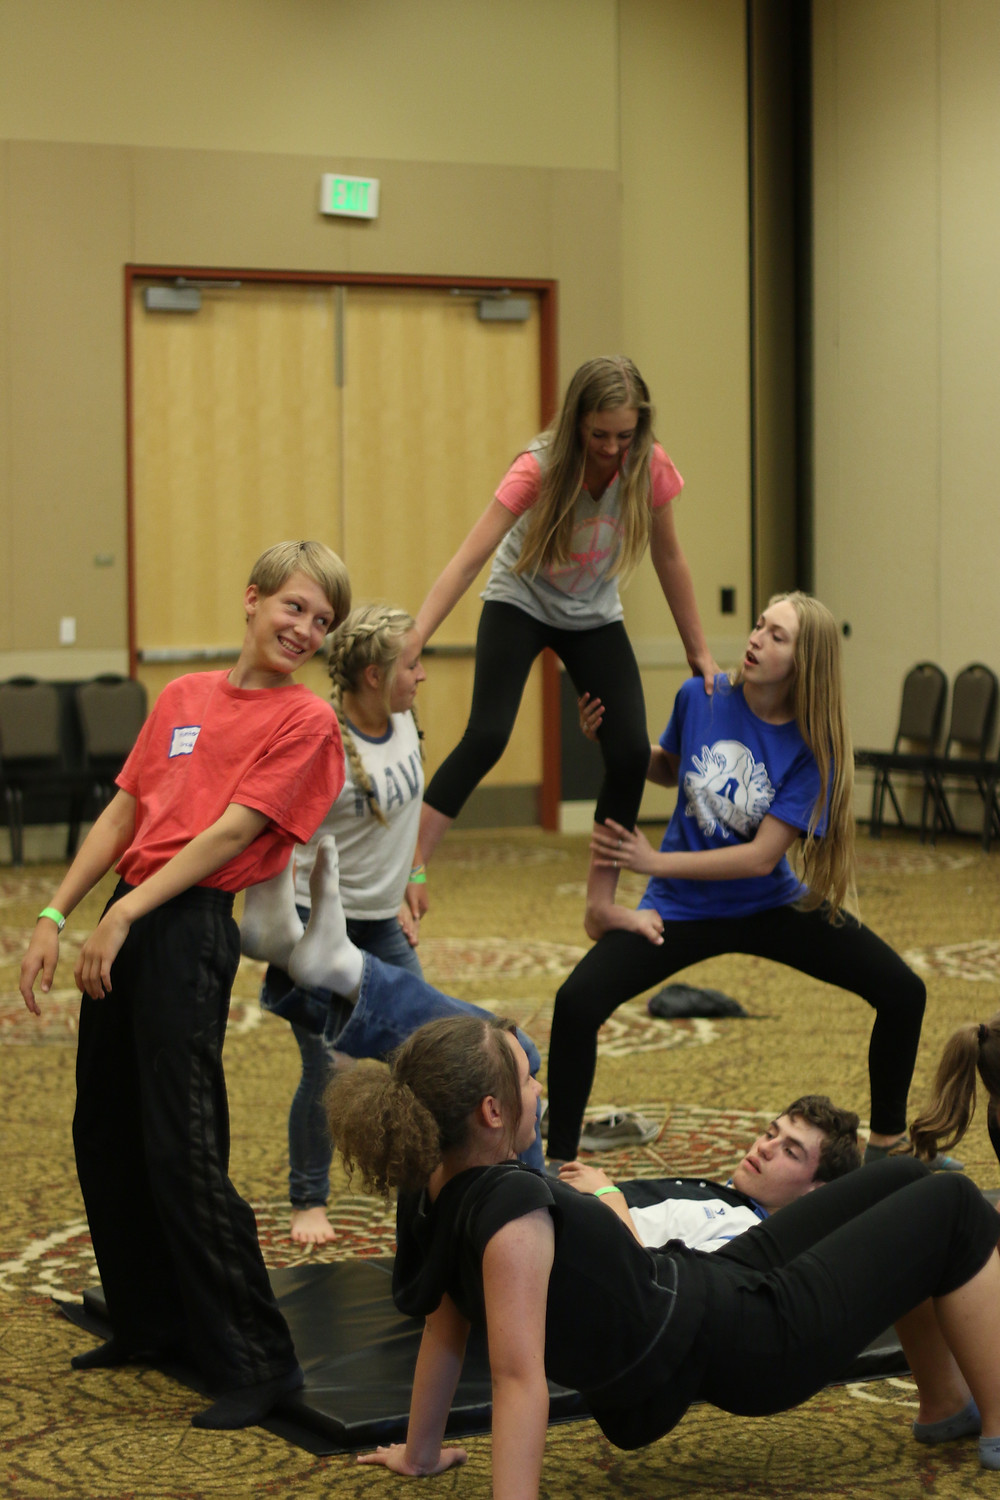 Students learning acro/pyramids at the UHEA 2017 Convention.